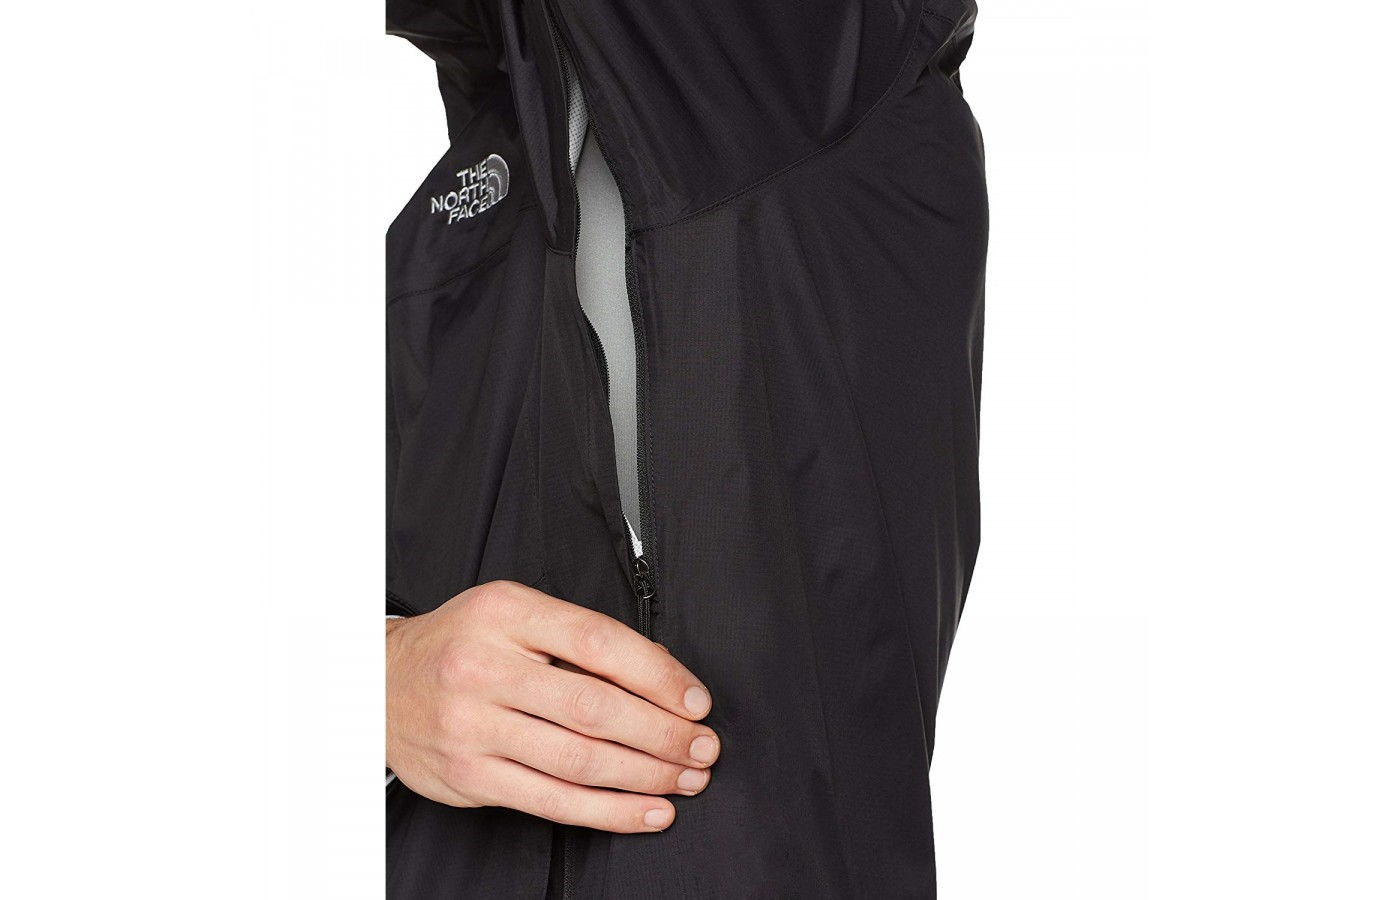 The North Face Venture 2 has pit-zip venting for additional breathability.